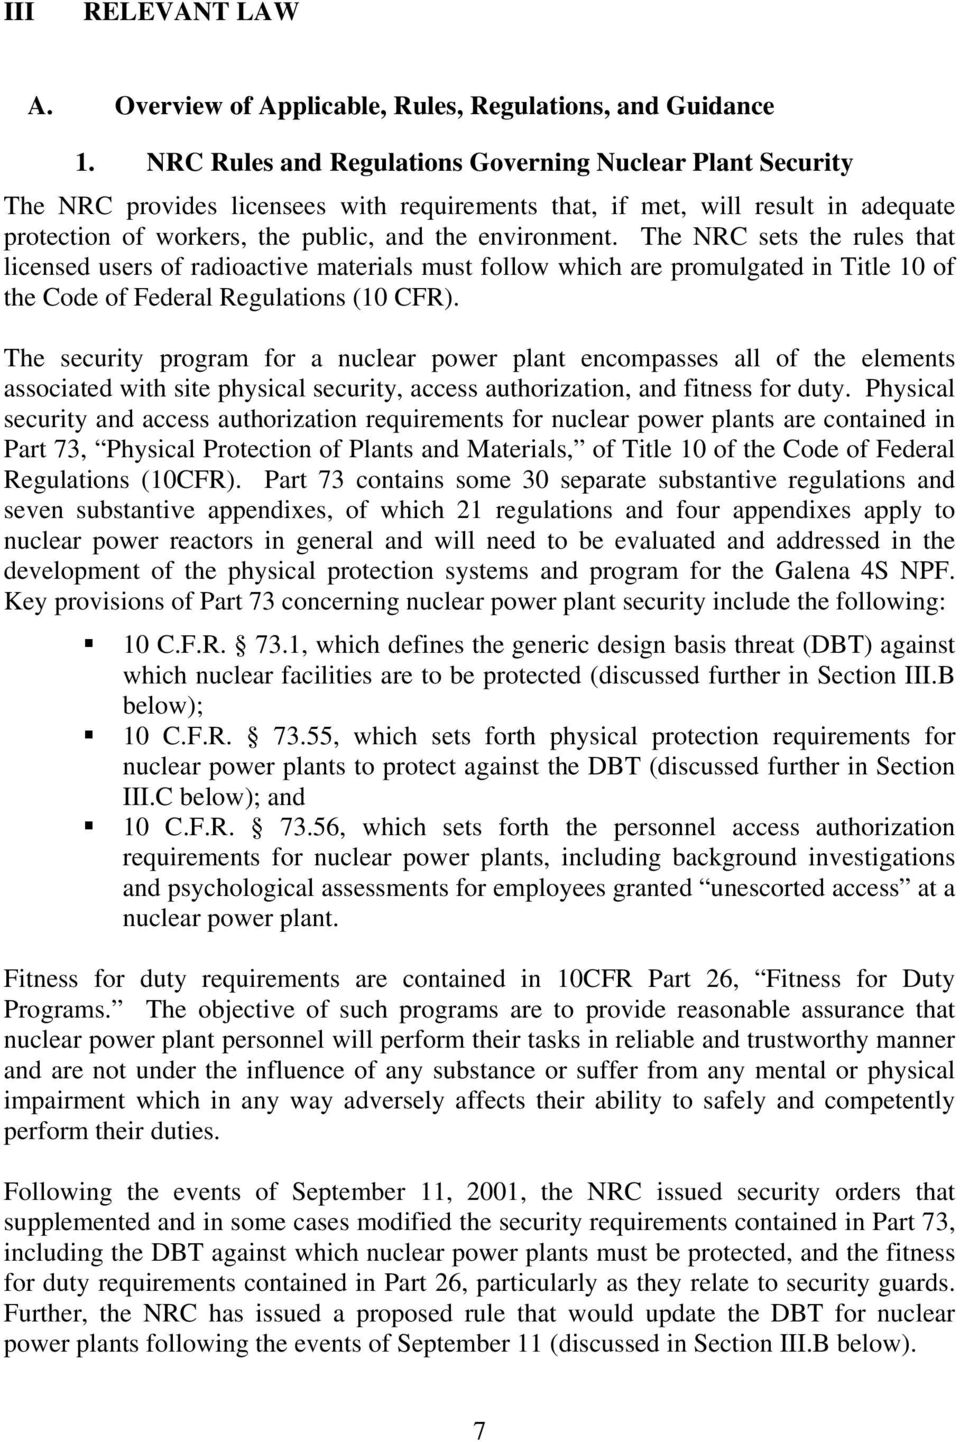 The NRC sets the rules that licensed users of radioactive materials must follow which are promulgated in Title 10 of the Code of Federal Regulations (10 CFR).